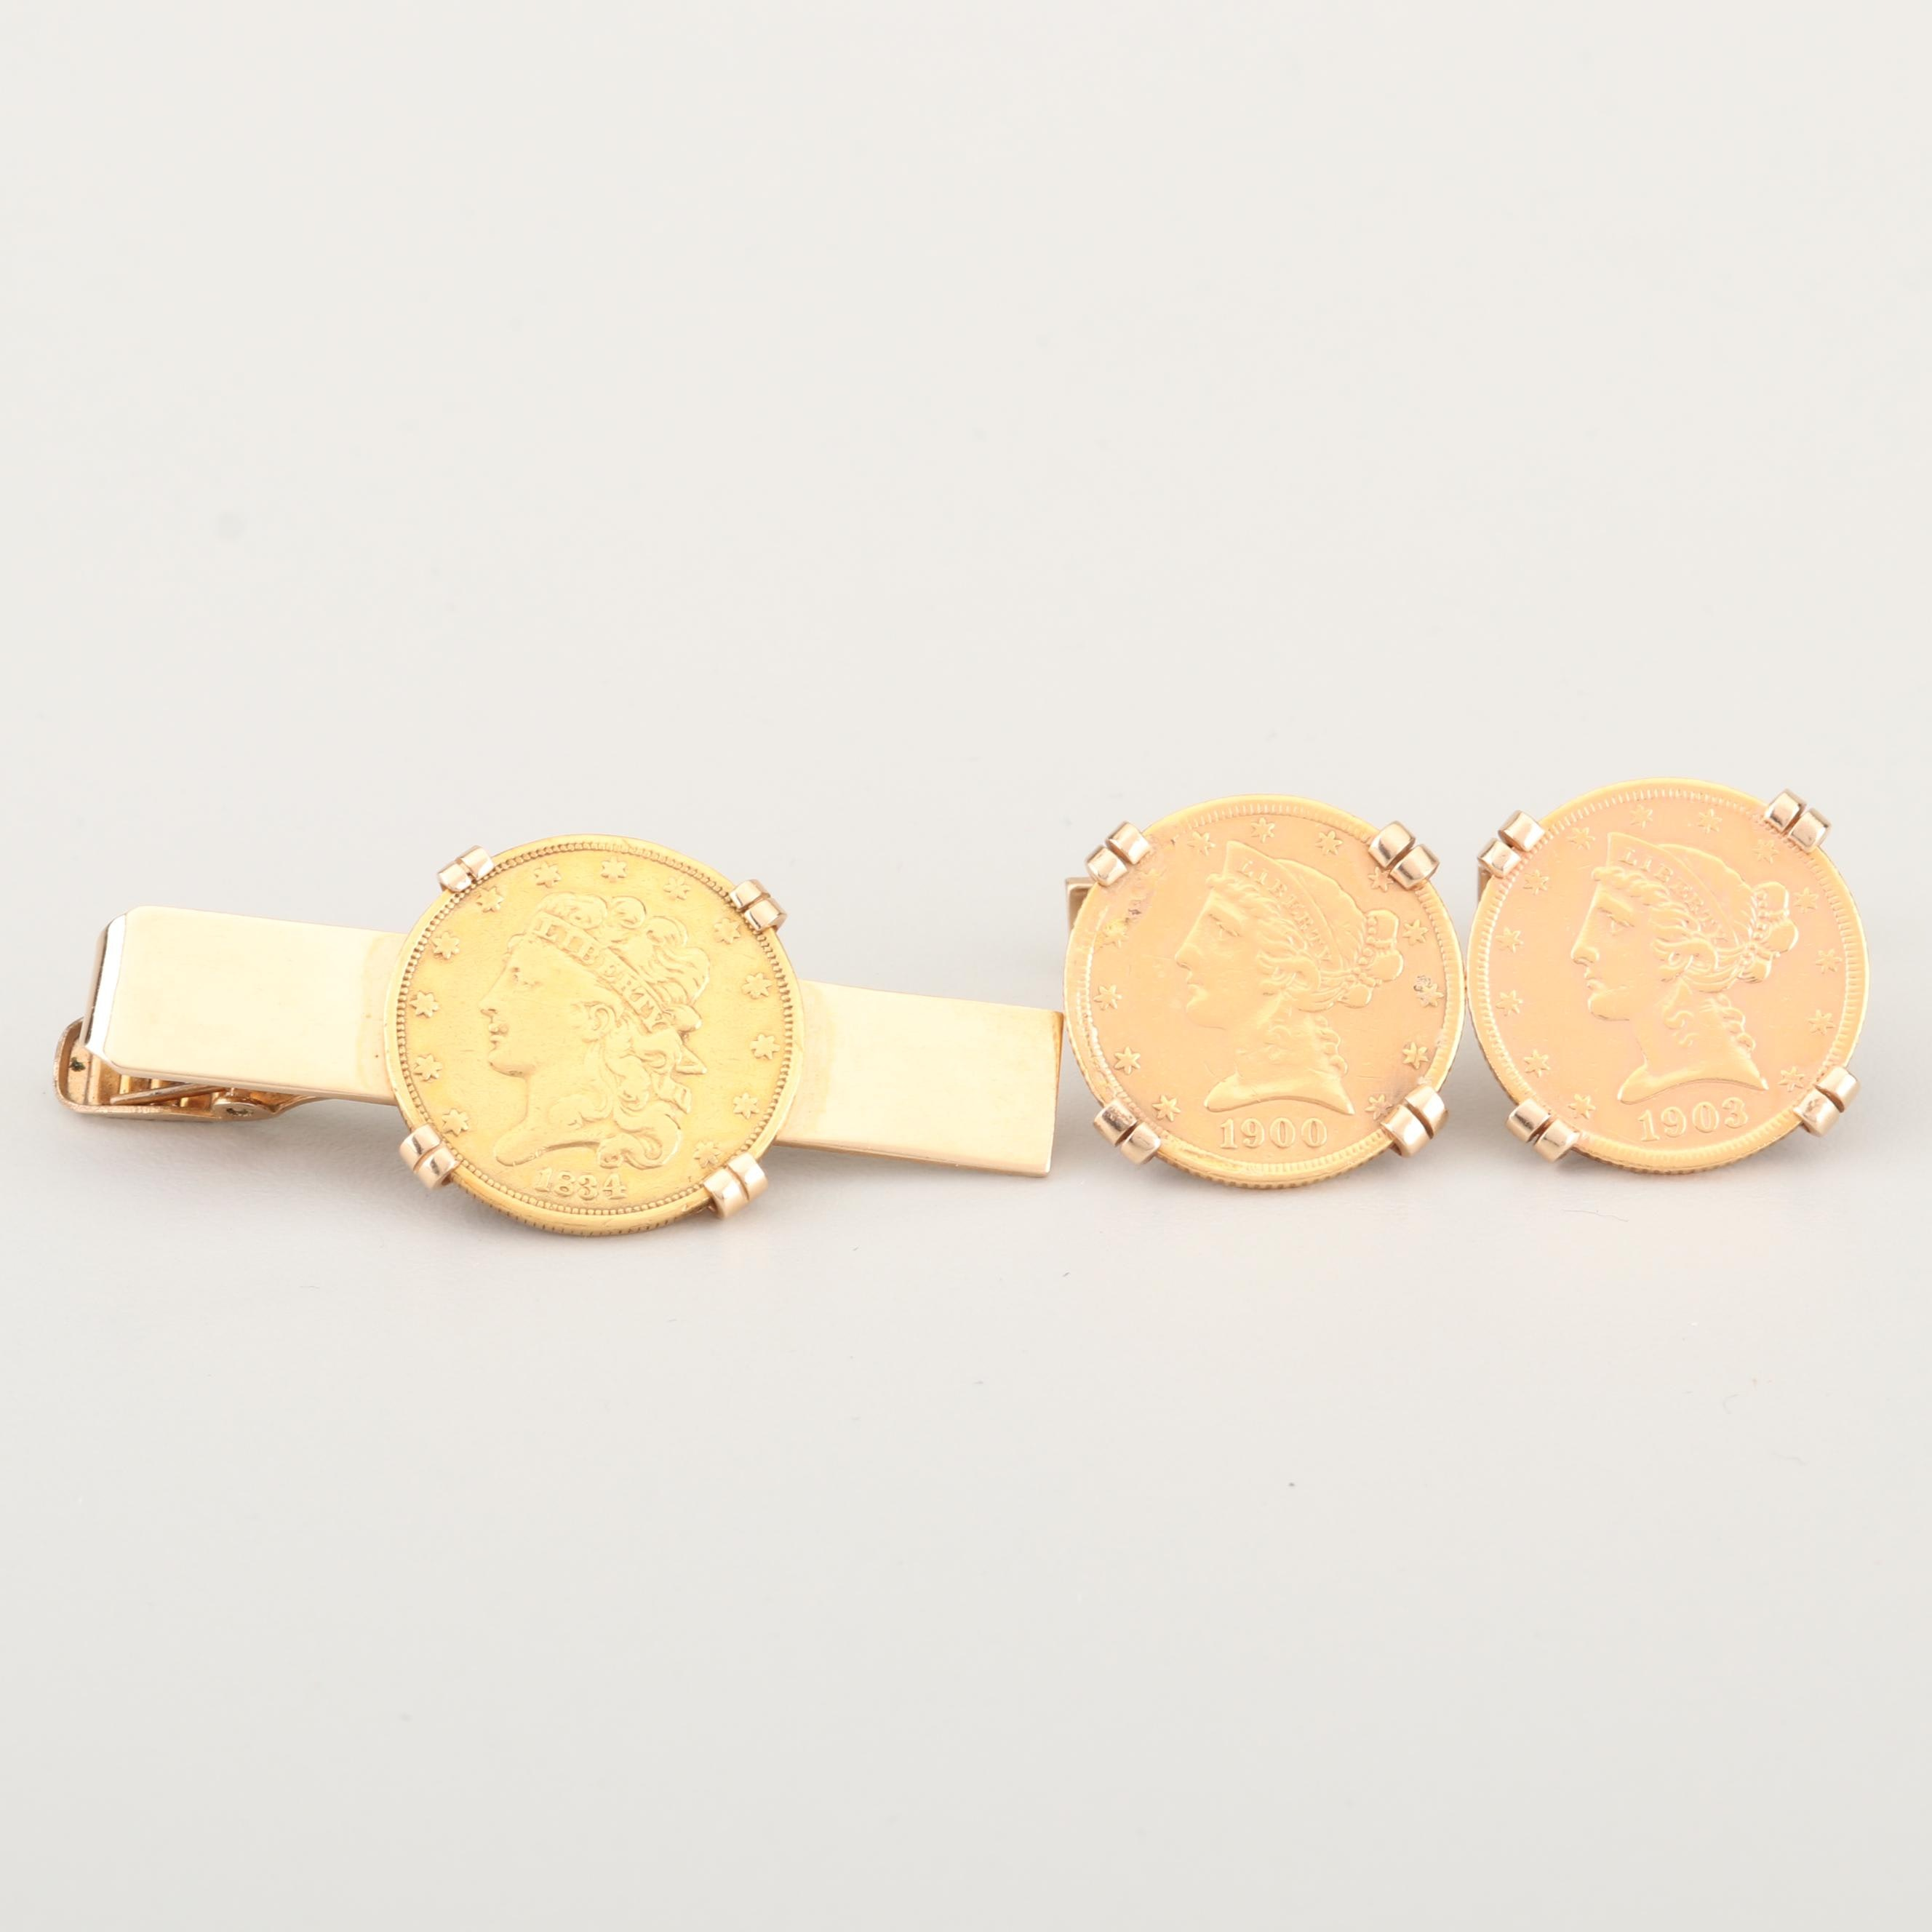 Liberty Head $5 Gold Coin Cufflinks and 1834 Classic Head $5 Gold Coin Tie Clip